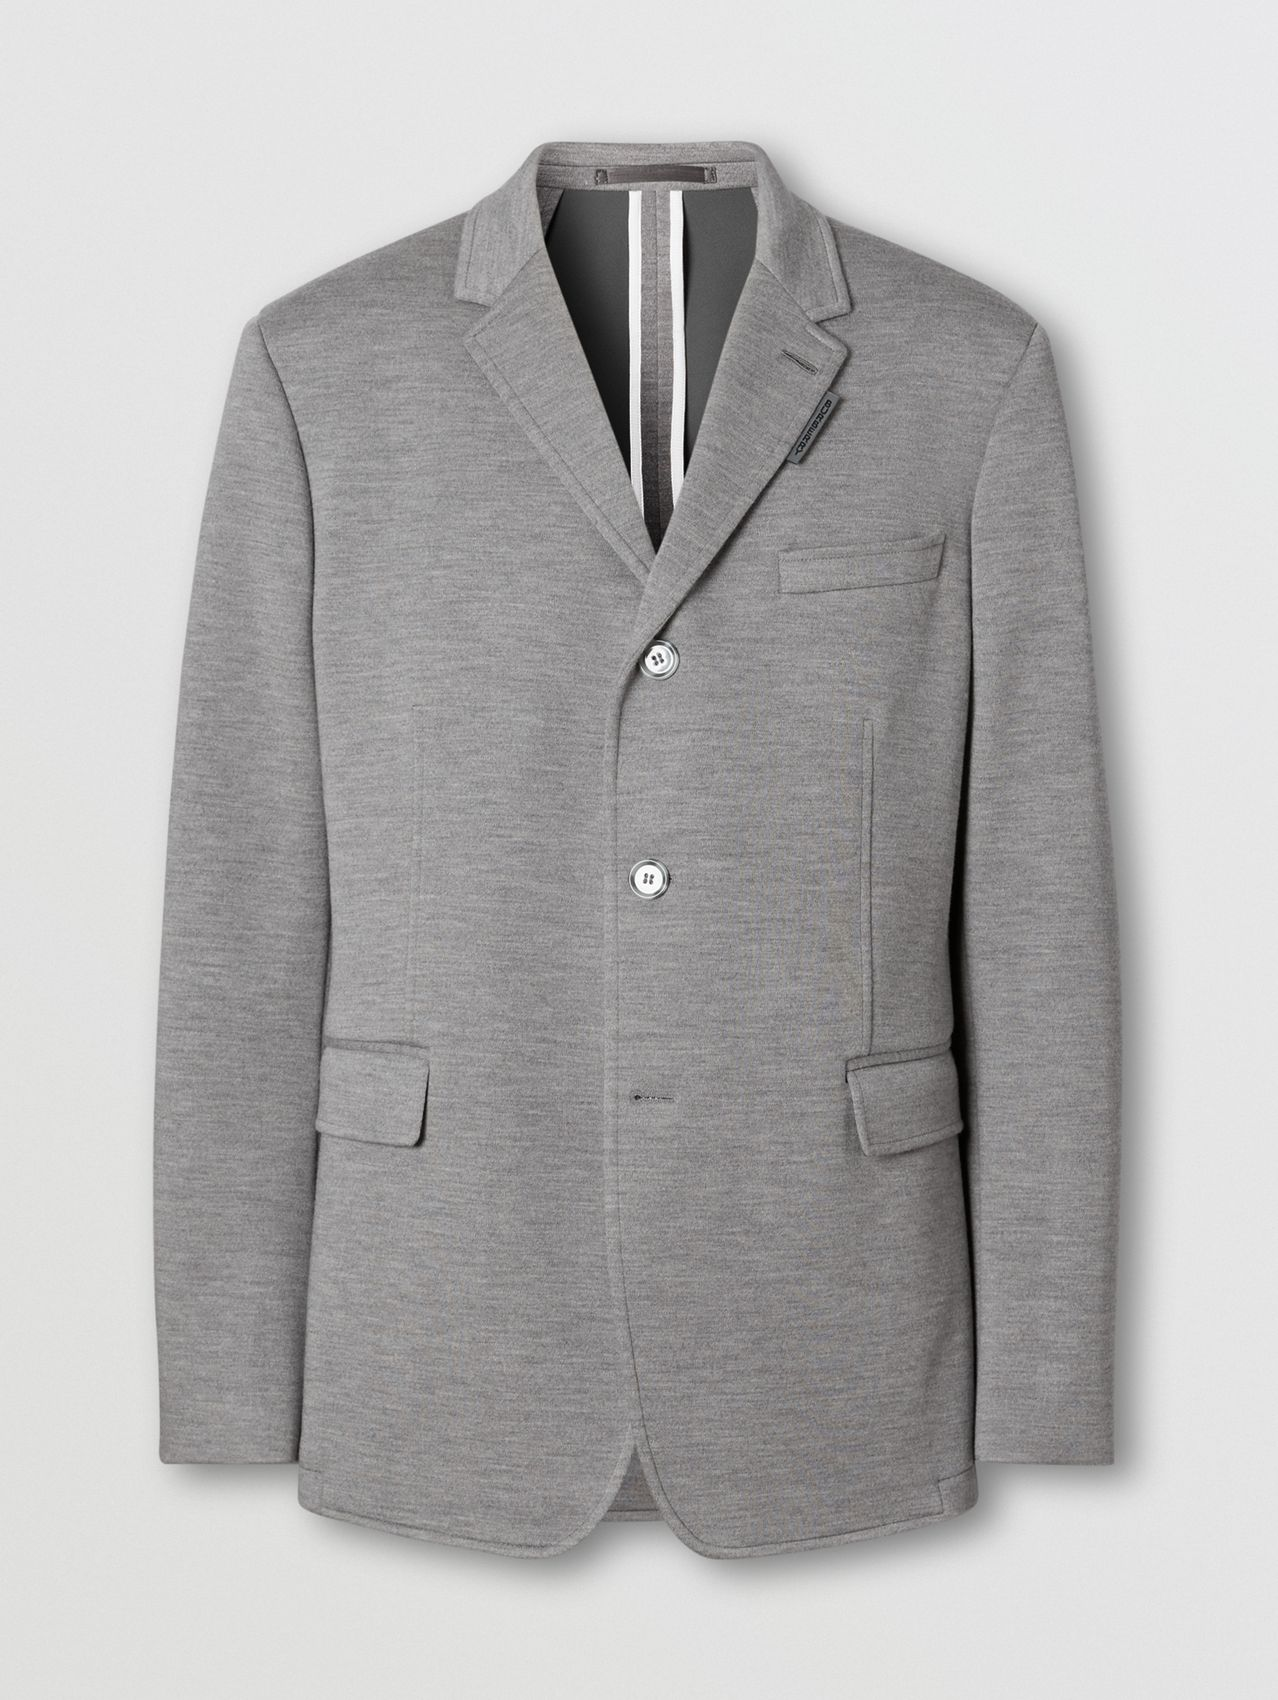 Relaxed Fit Wool Jersey Tailored Jacket in Cloud Grey